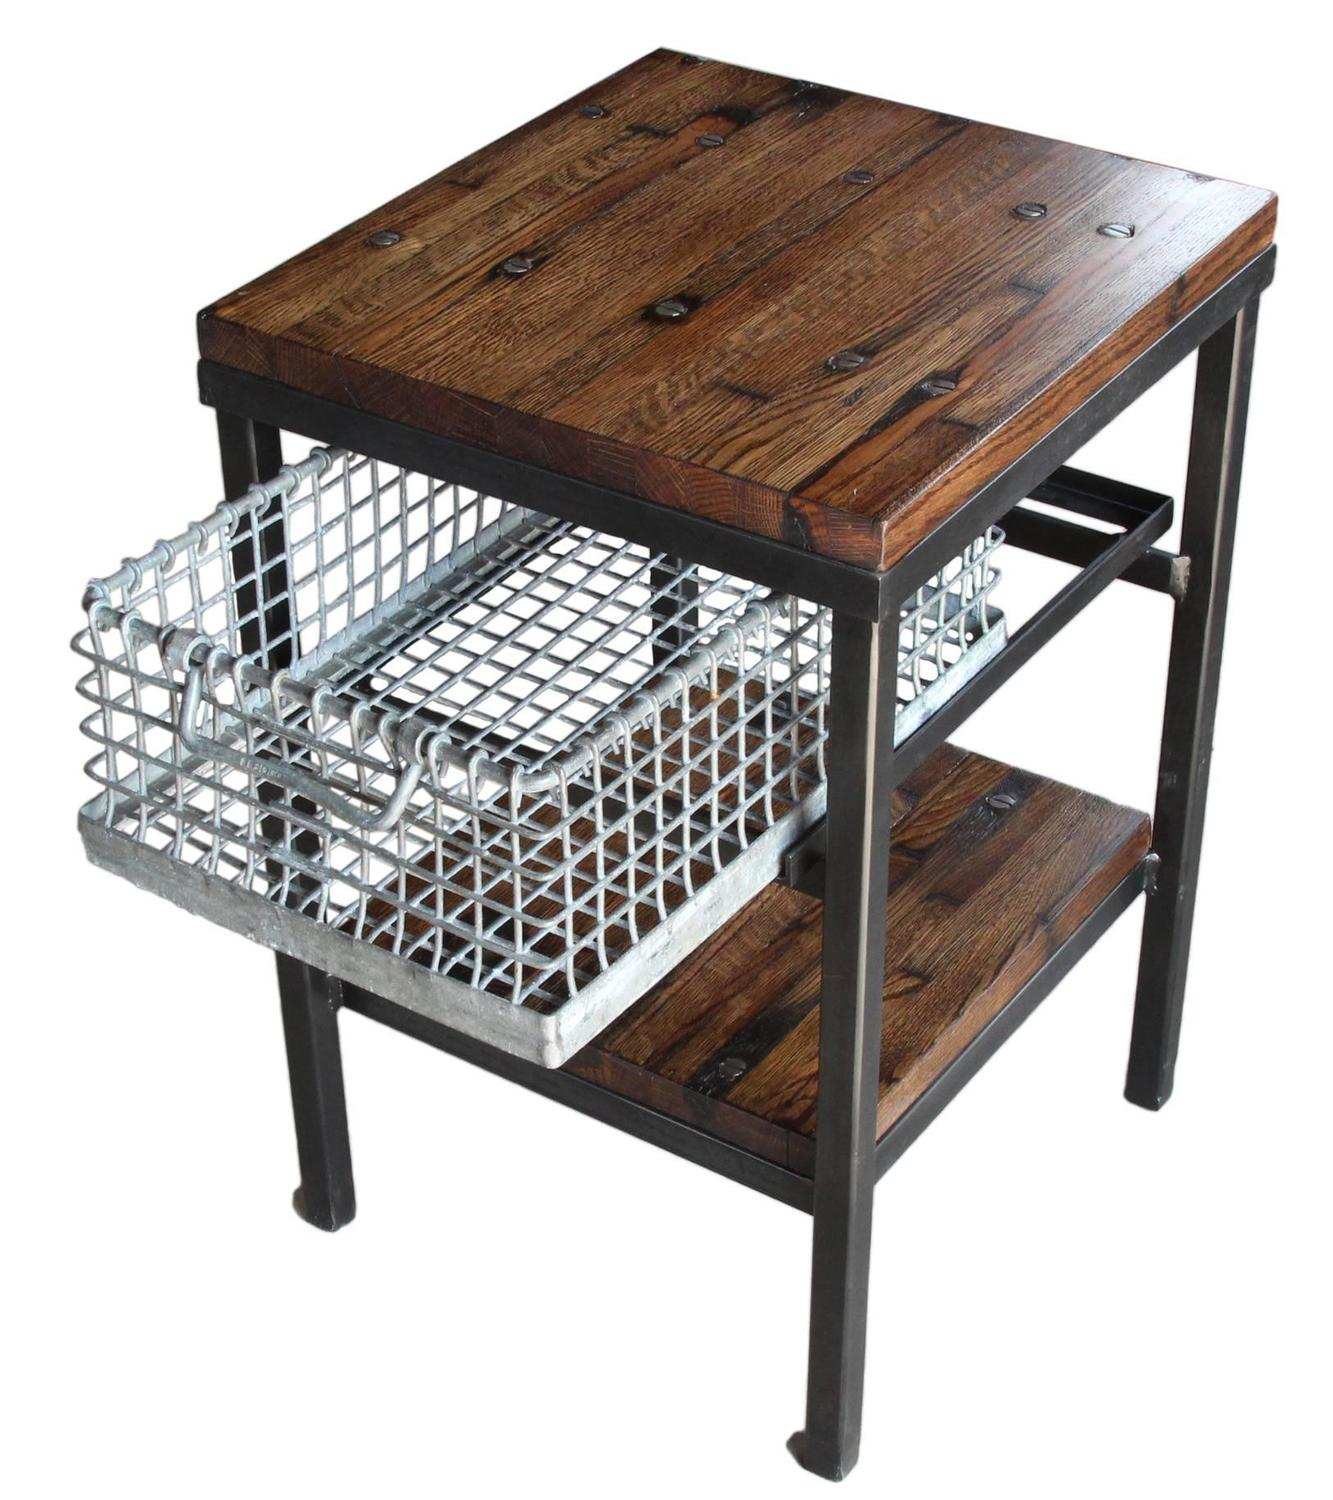 galvanized storage basket nightstand end table with shelf antique accent baskets pottery arn pub set west elm box frame dining tier decorative cabinet doors unique home pieces